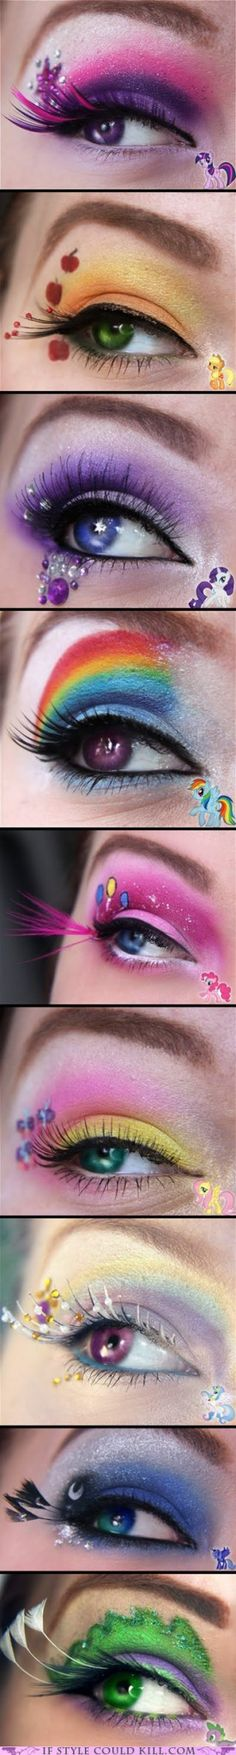 My Little Pony or not these are awesome eye looks!